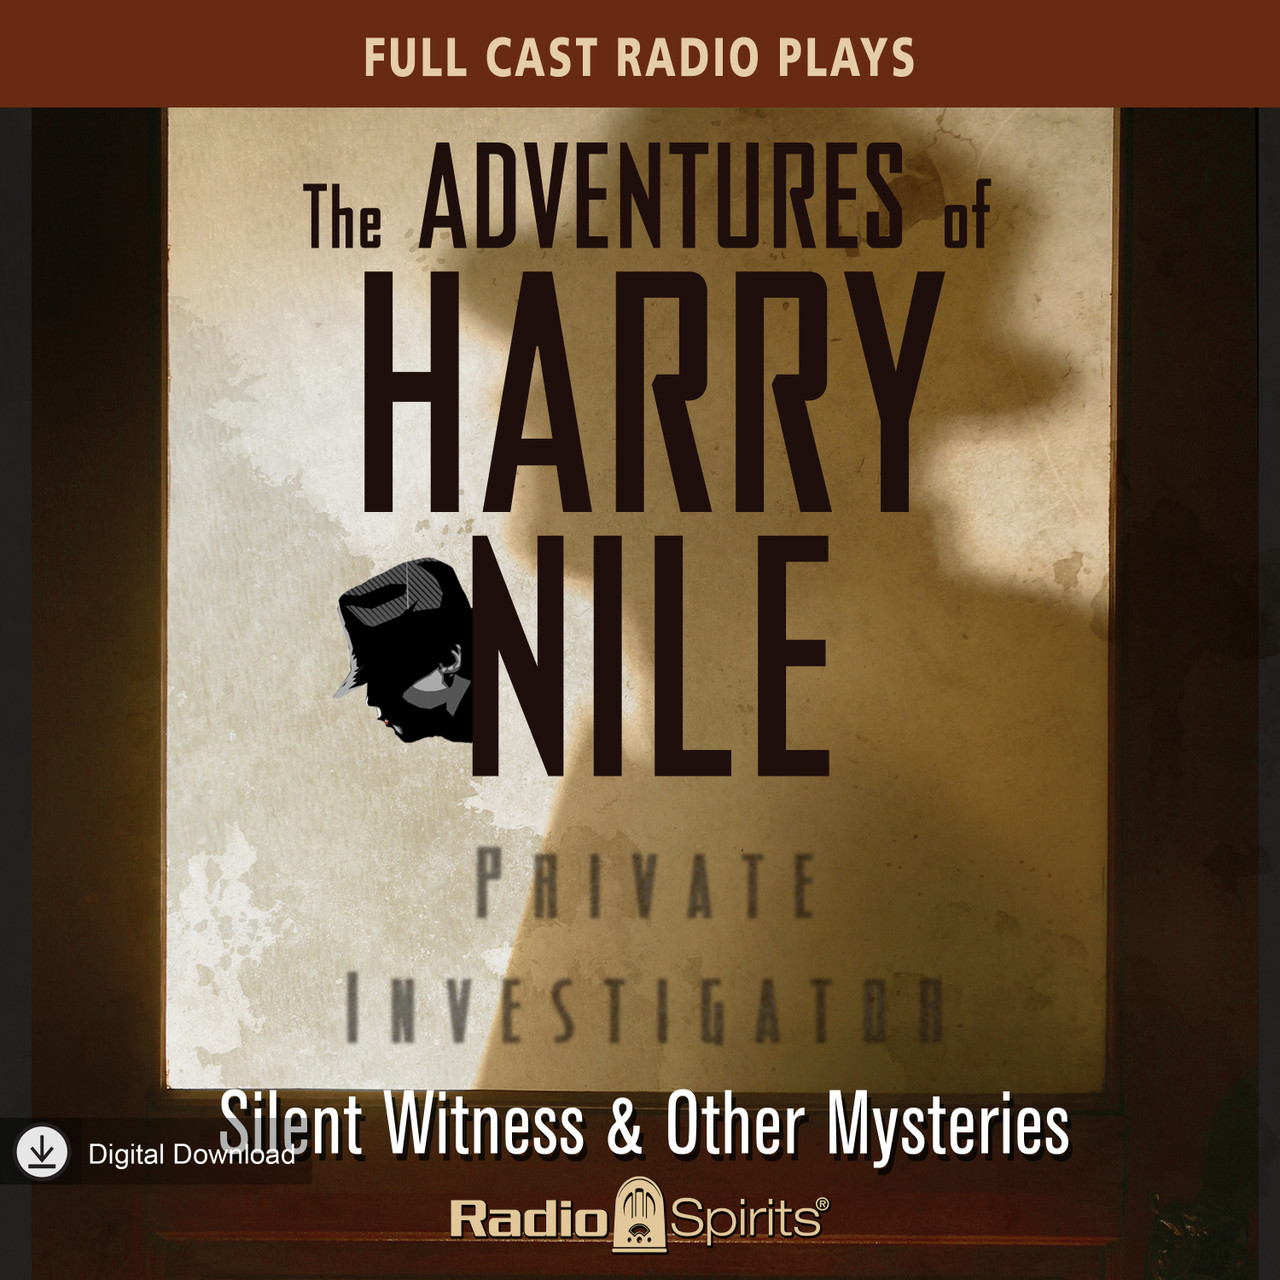 Harry Nile: Silent Witness & Other Mysteries (MP3 Download)